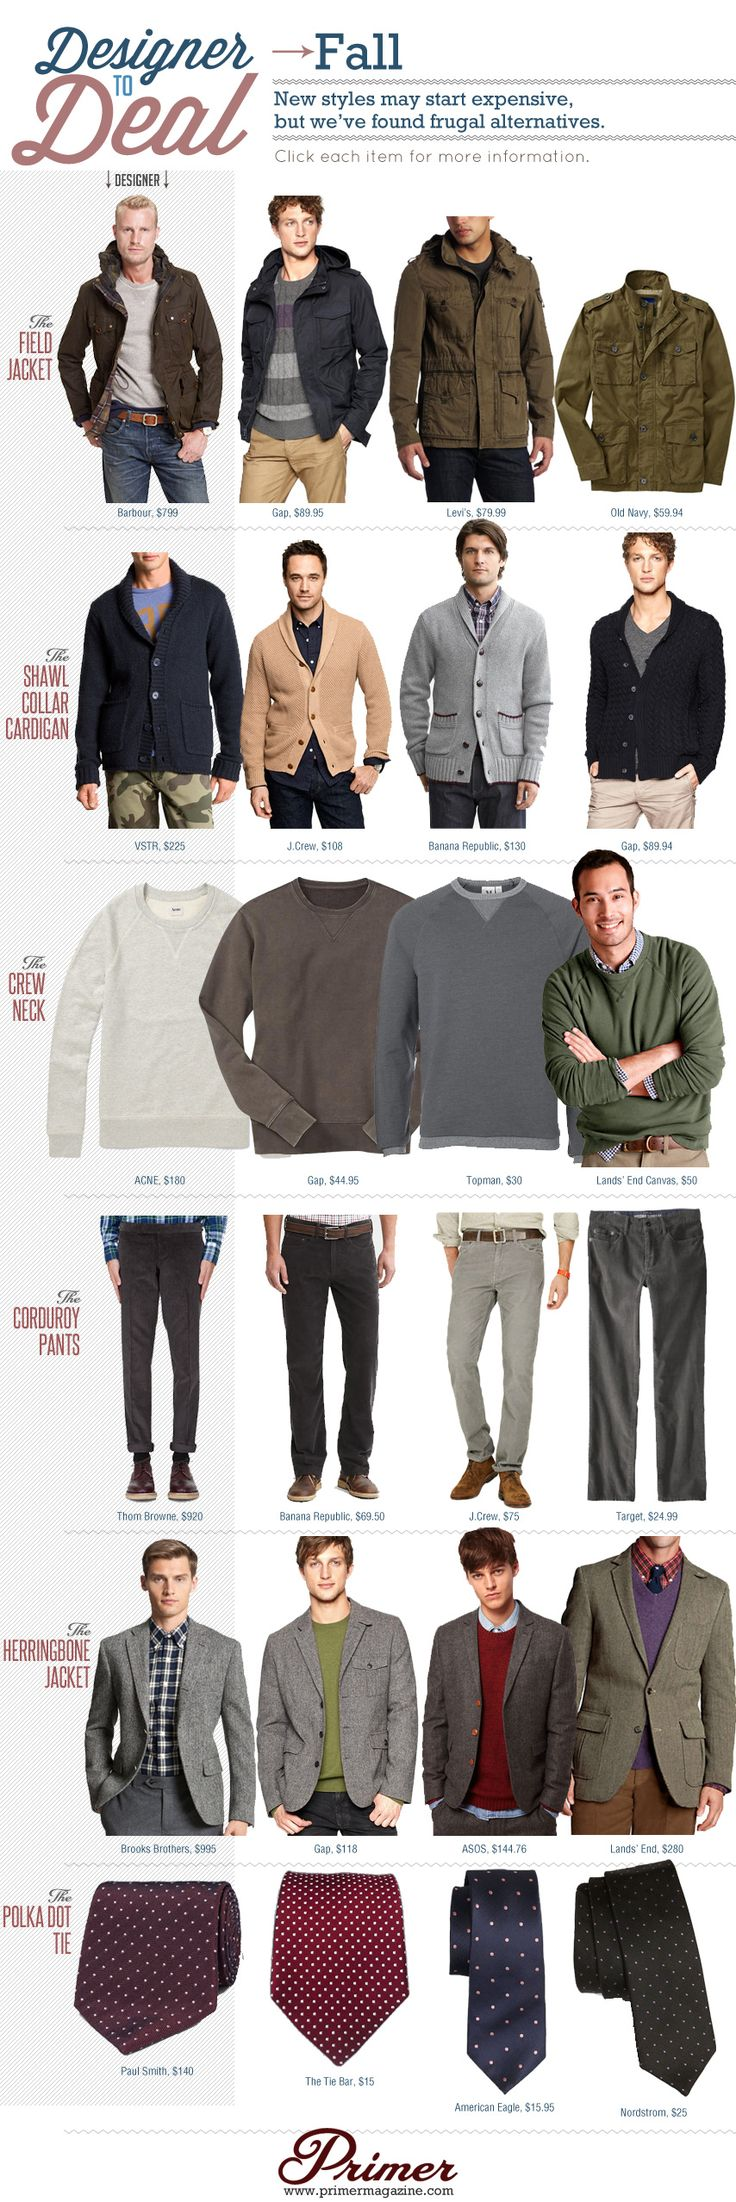 Designer to Deal: Fall | Primer More price friendly versions of great styles.Fall Style, Mens Fashion Fall Essentials, Price Point, Fall Fashion Men, Men Fashion, Men'S Fashion, Items Dependent, Men Fall Outfits Menswear, Men Fall Fashion